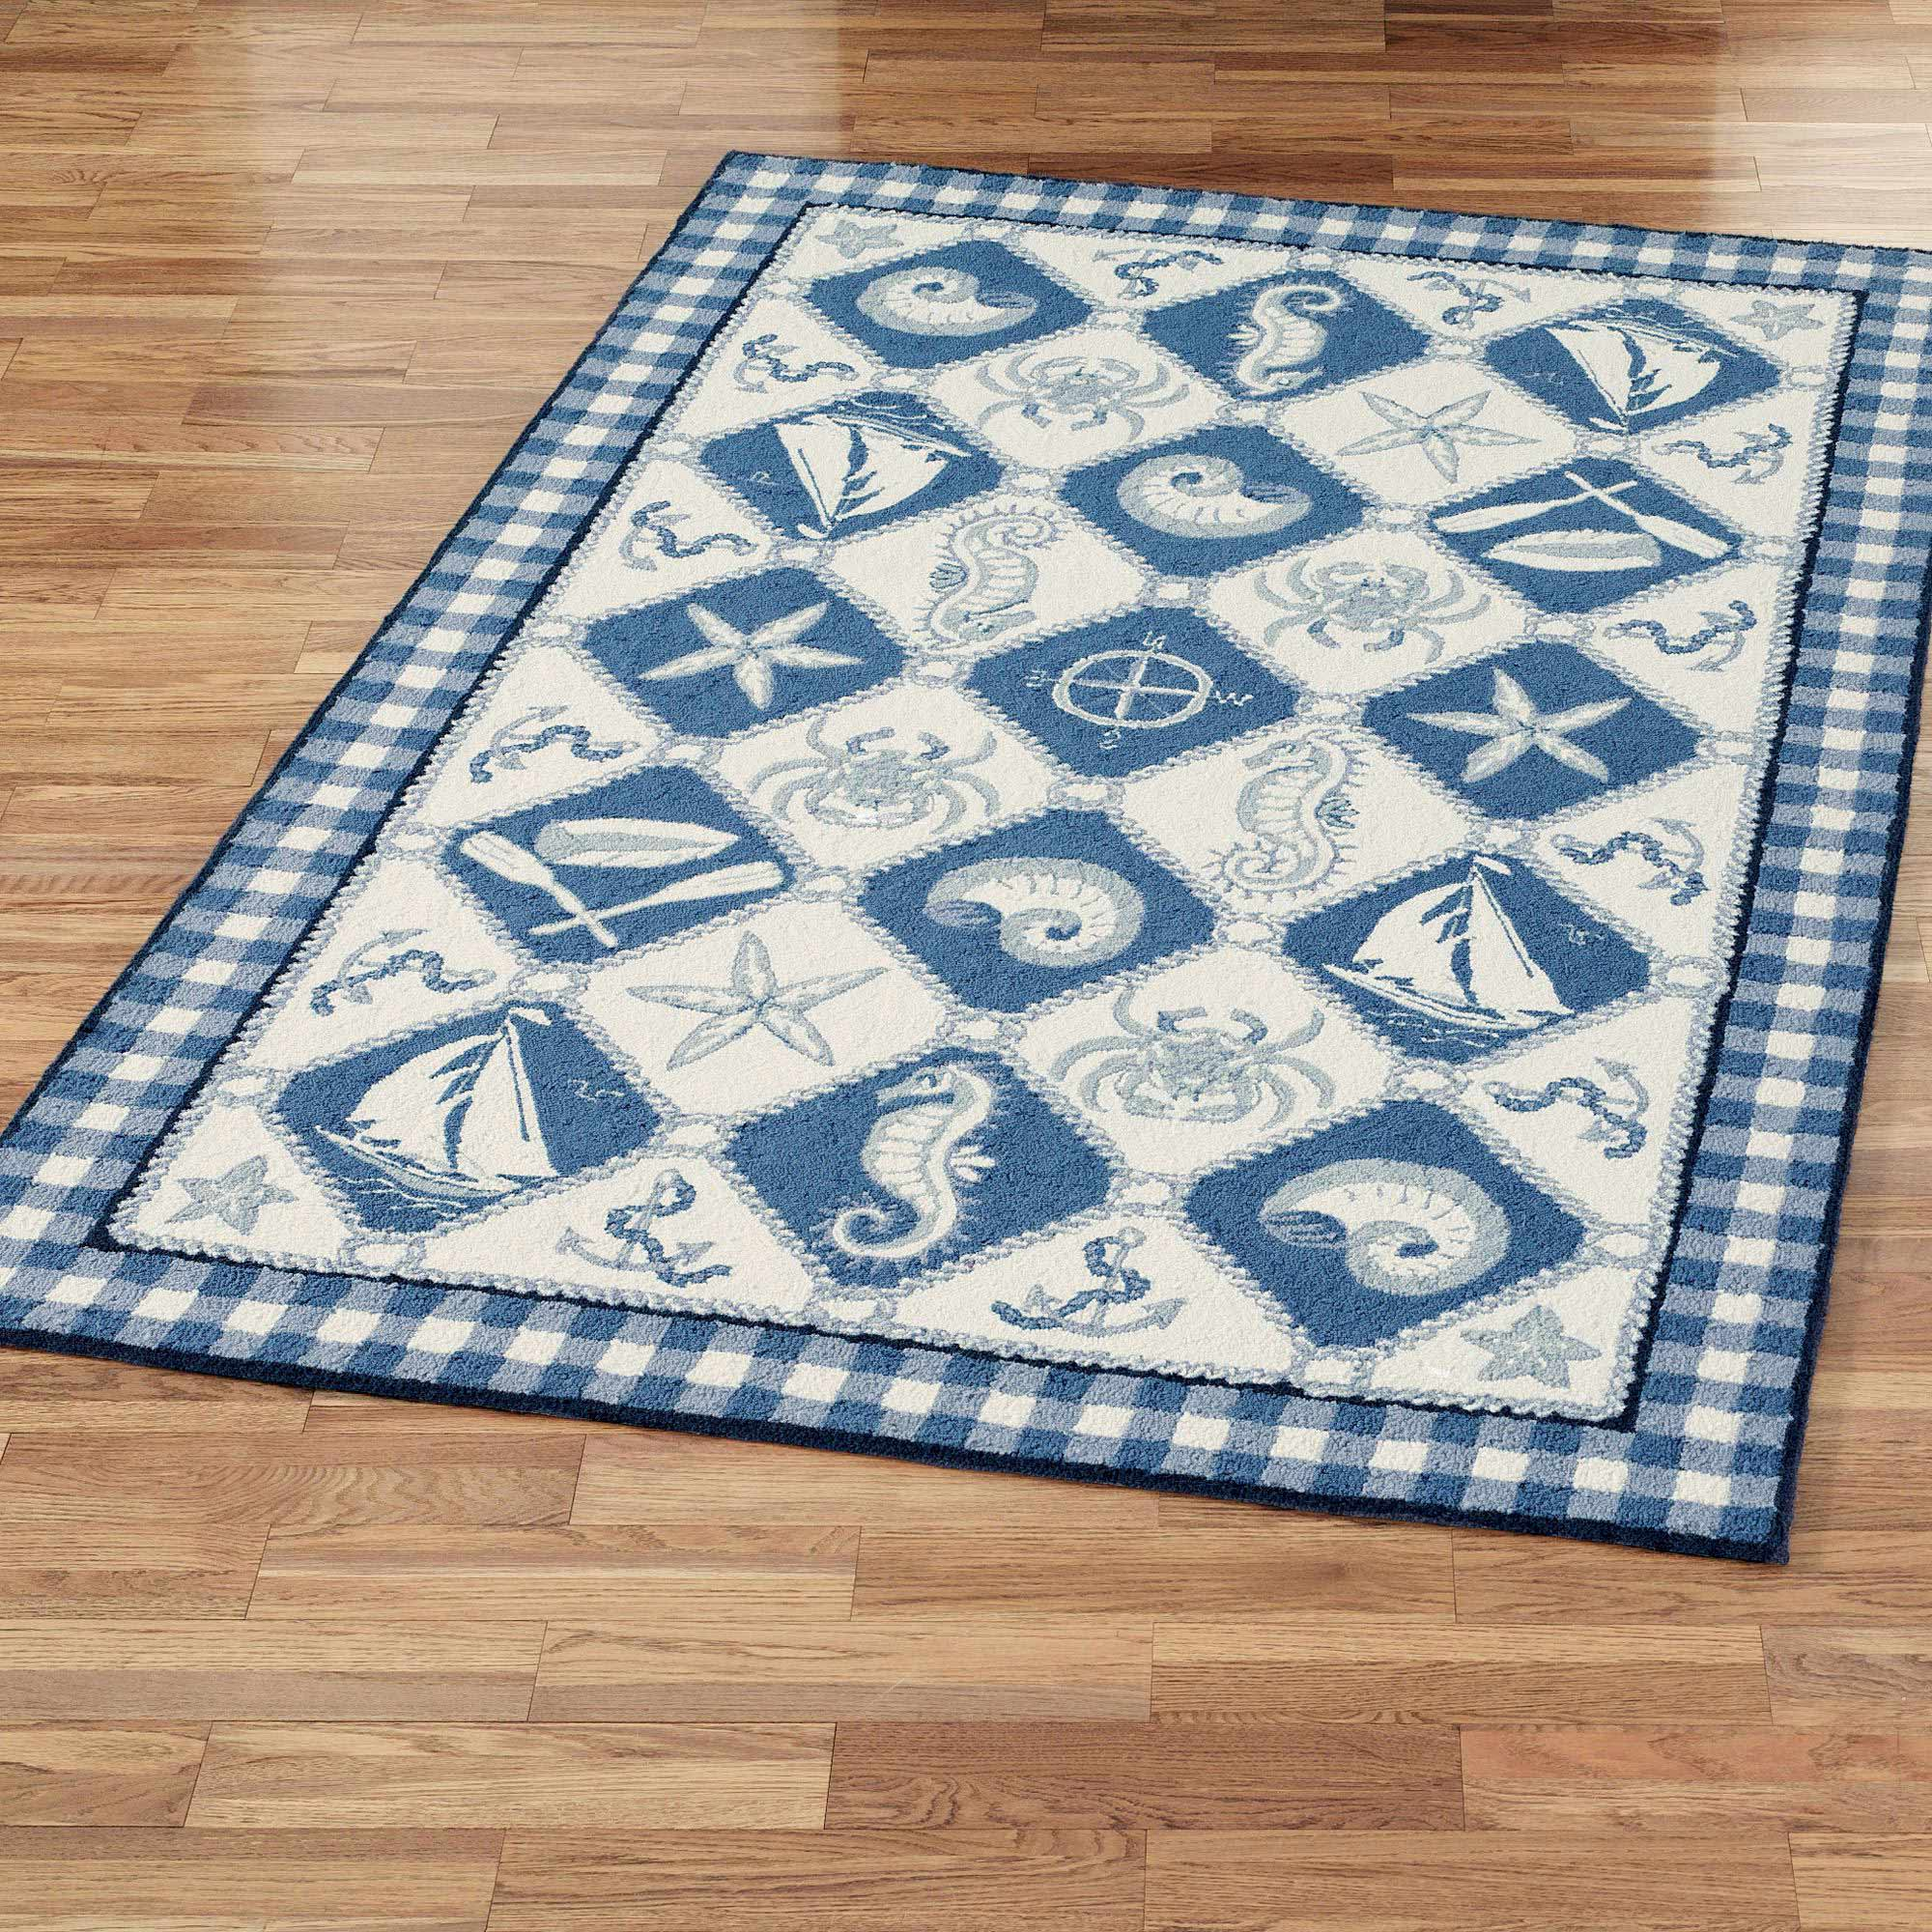 Dog Themed Outdoor Rugs: Coastal Kitchen Rugs Themed